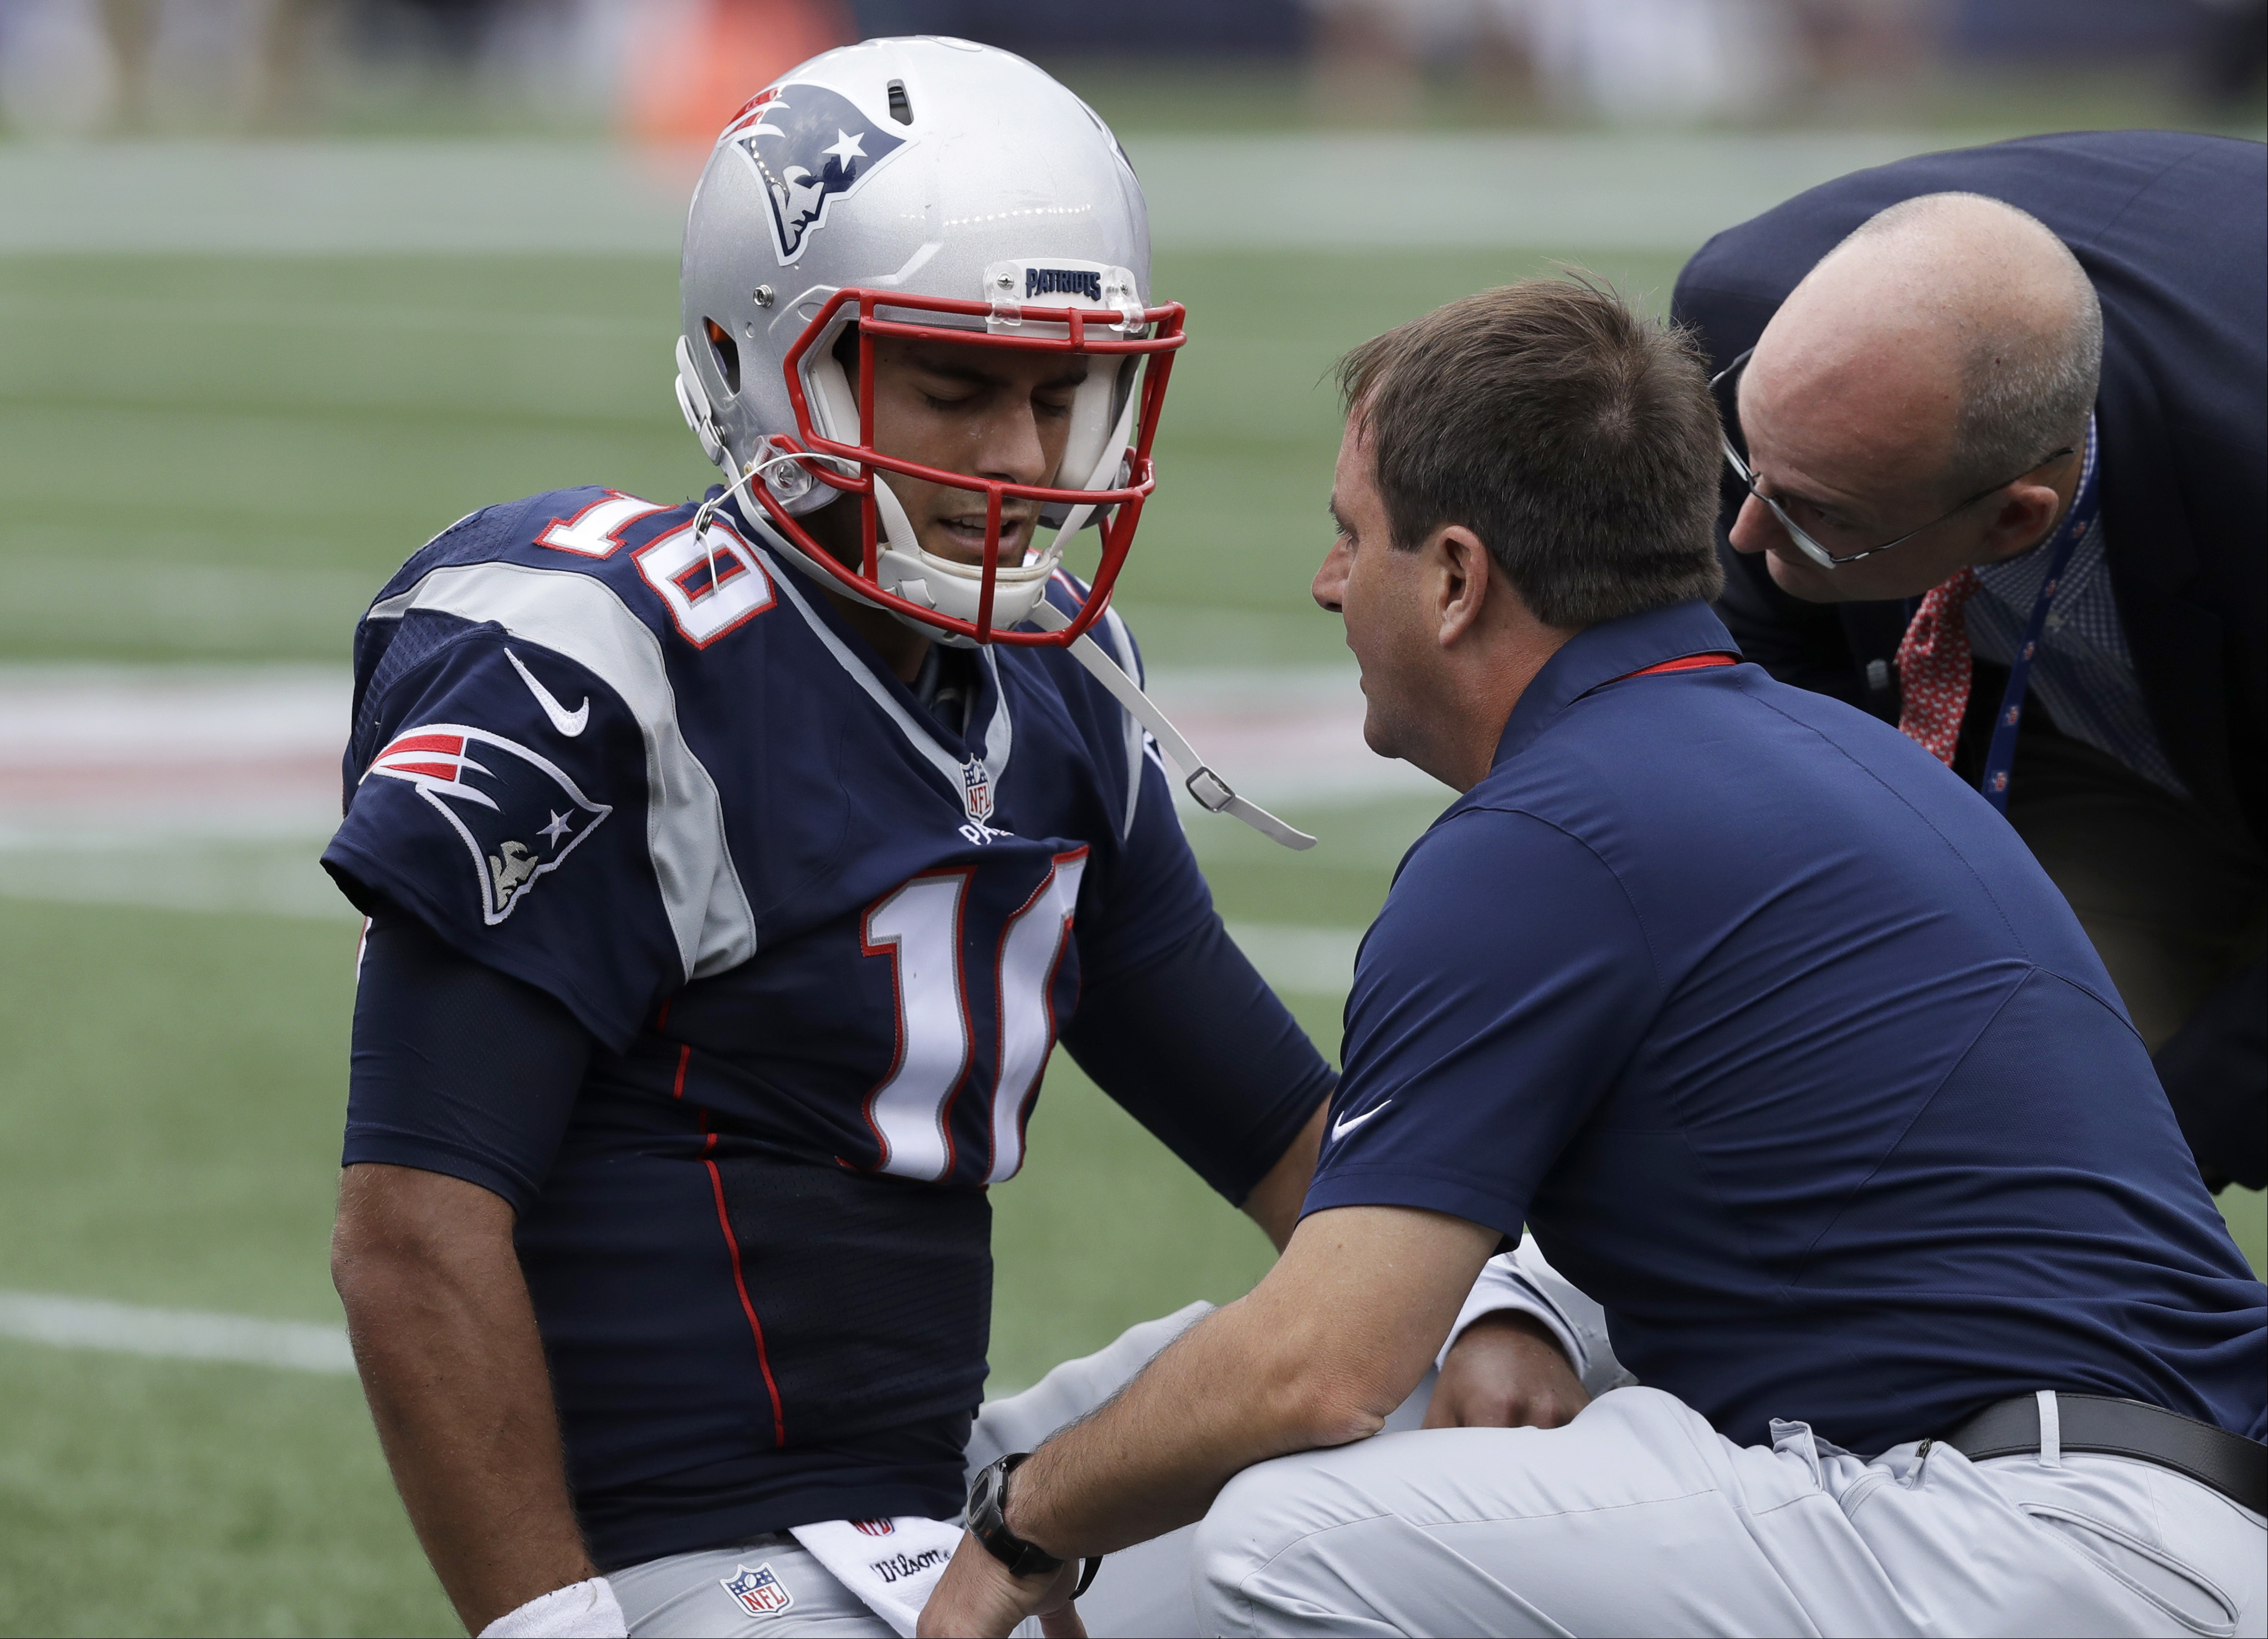 New England Patriots quarterback Jimmy Garoppolo receives attention after an injury during the first half of an NFL football game against the Miami Dolphins, Sunday, Sept. 18, 2016, in Foxborough, Mass. (AP Photo/Charles Krupa)